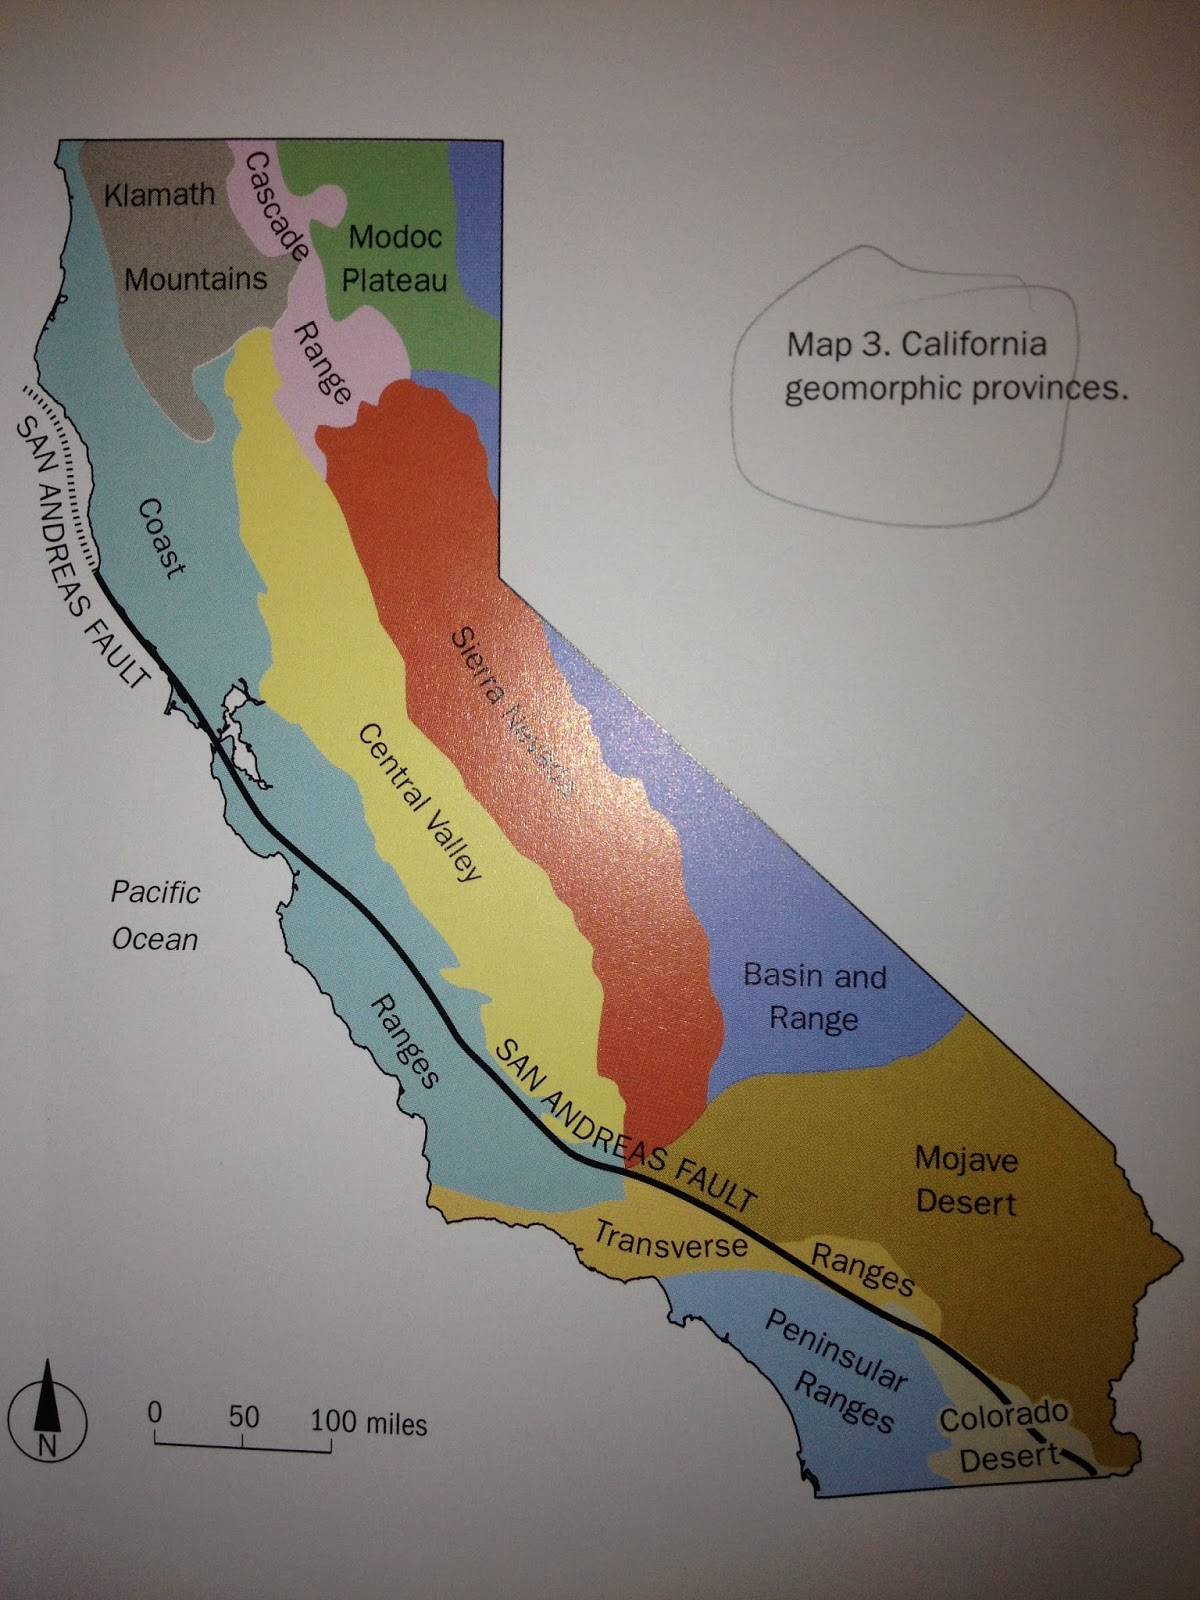 medium resolution of the san andreas fault passes exclusively through the coast ranges in northern ca image taken from geology of the san francisco bay region by